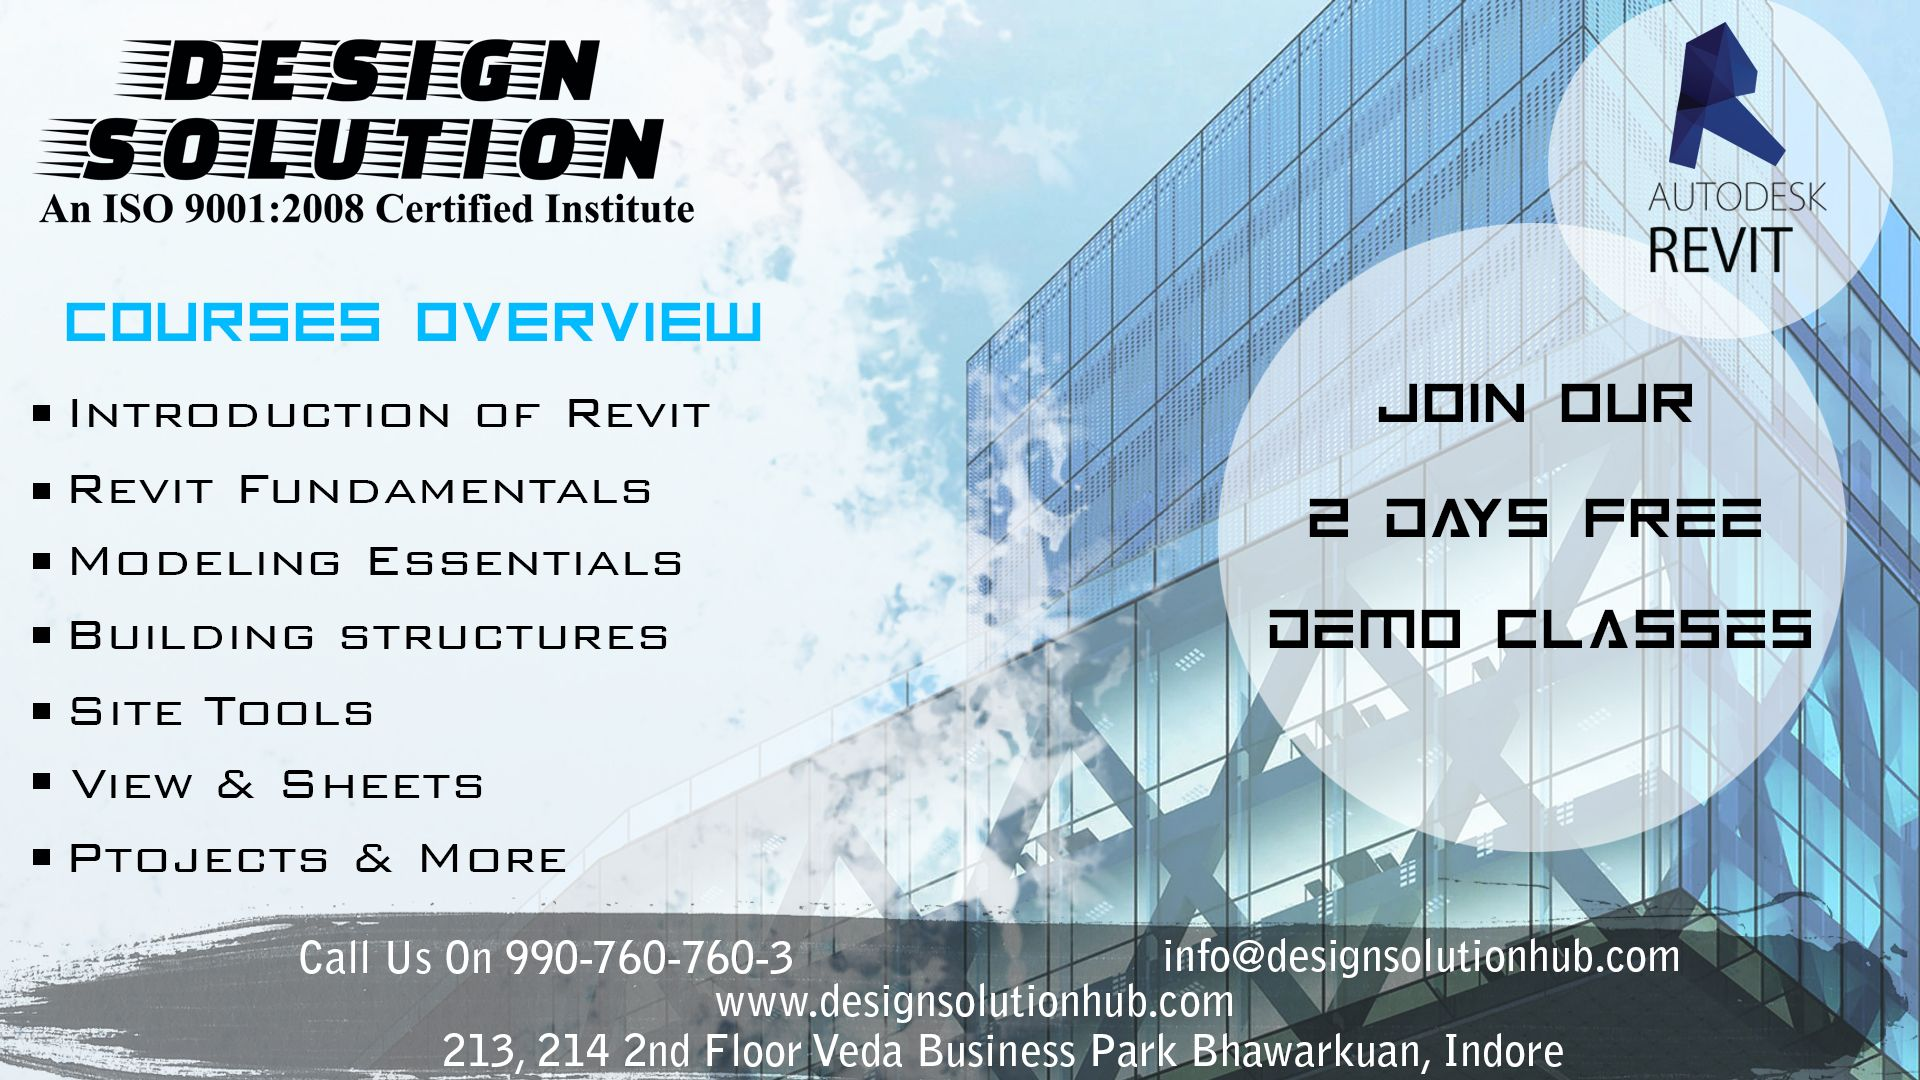 Autodesk Revit Is Building Information Modelling Software For Architects Structural Engineers Designer Structural Engineering Design Solutions Autodesk Revit